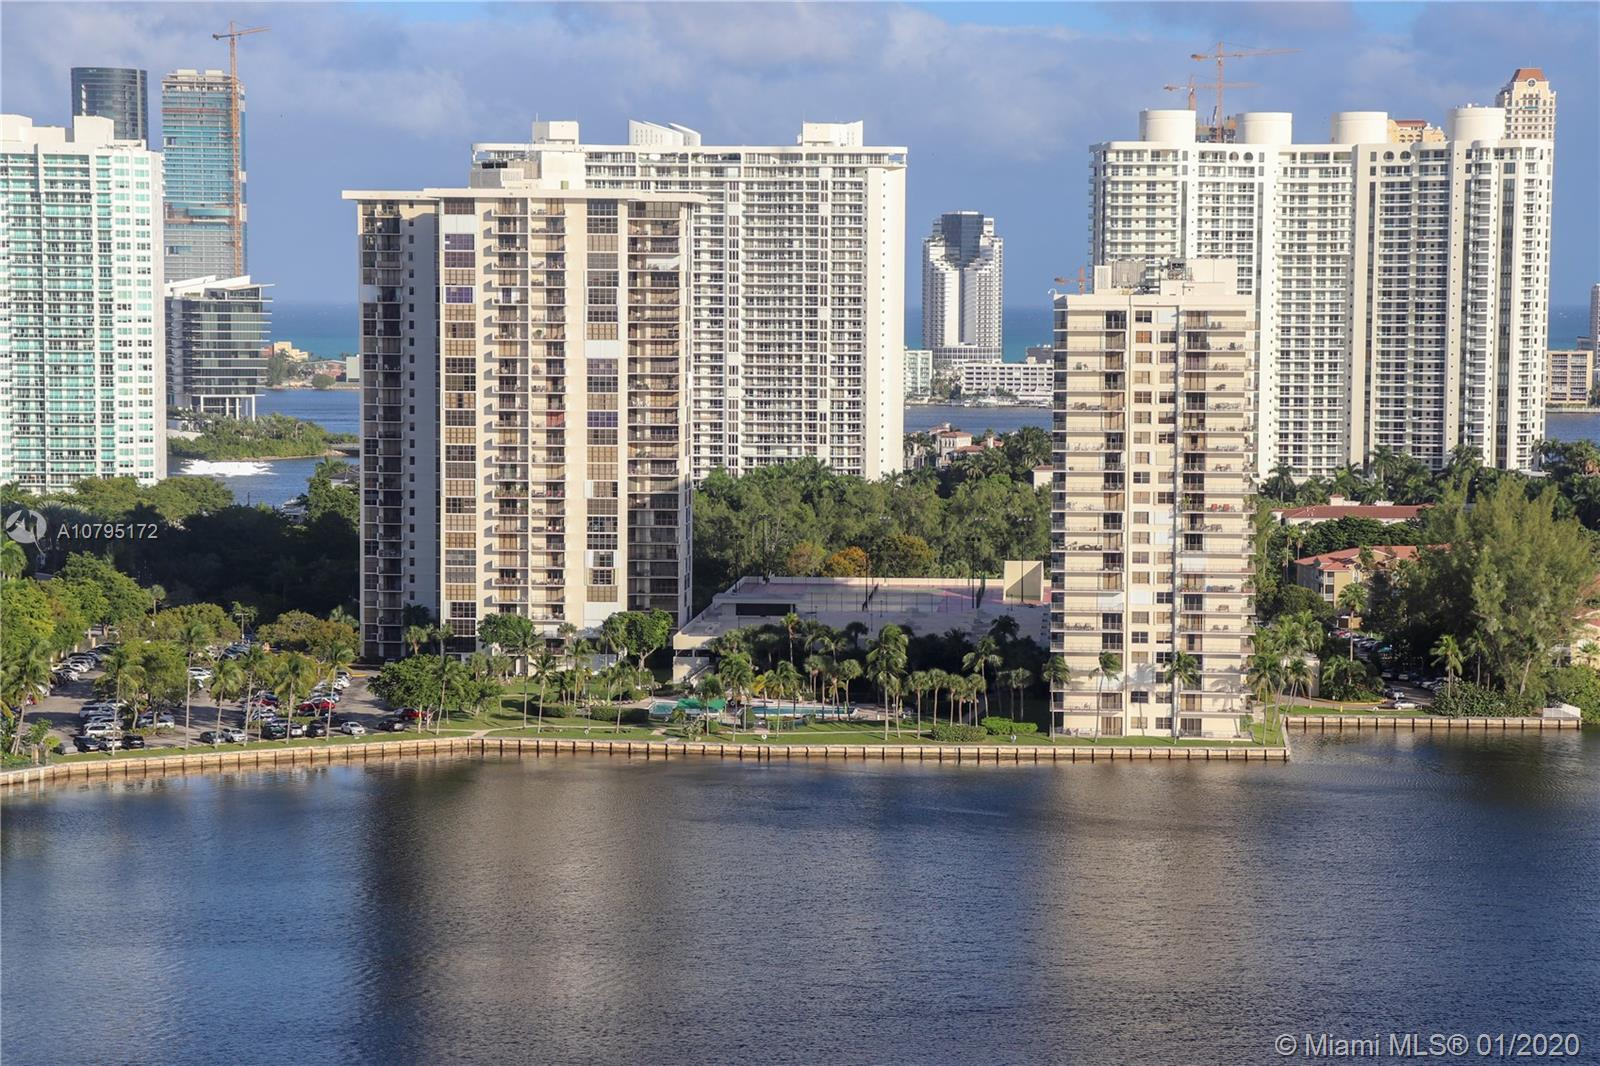 Stunning lake view for this charming apartment located in the heart of Aventura! This 1bed / 1 bath